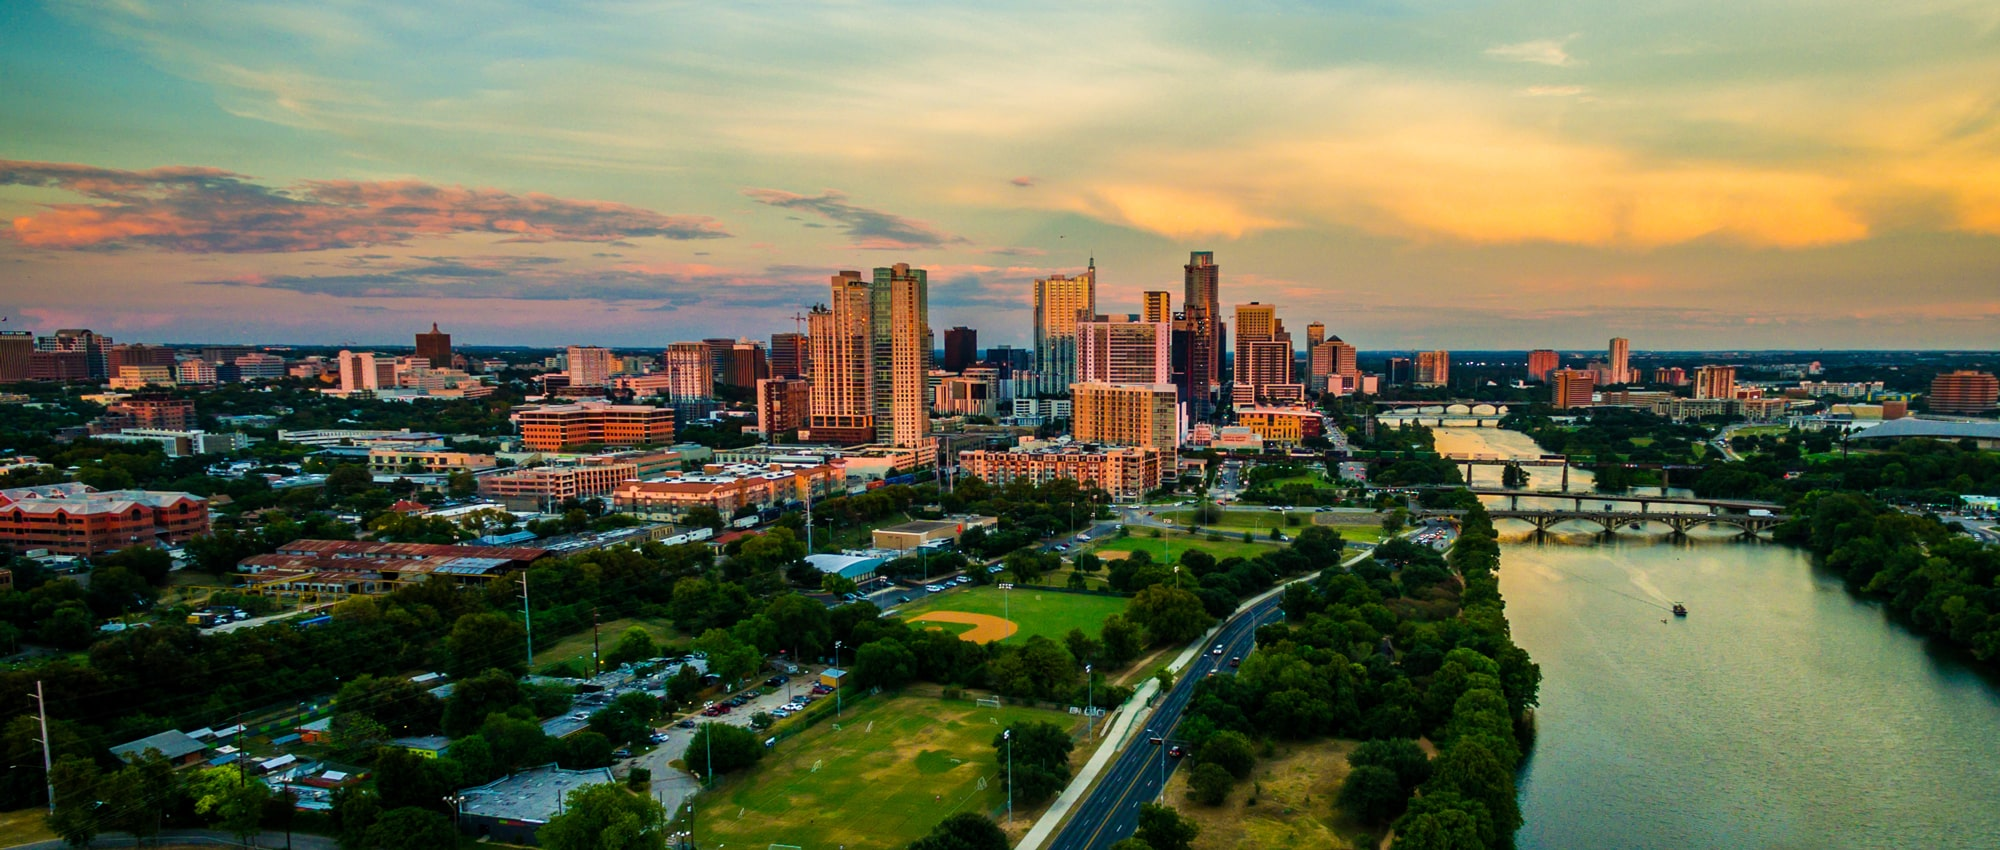 The best of downtown austin texas cbd what to do for Things to do near austin texas